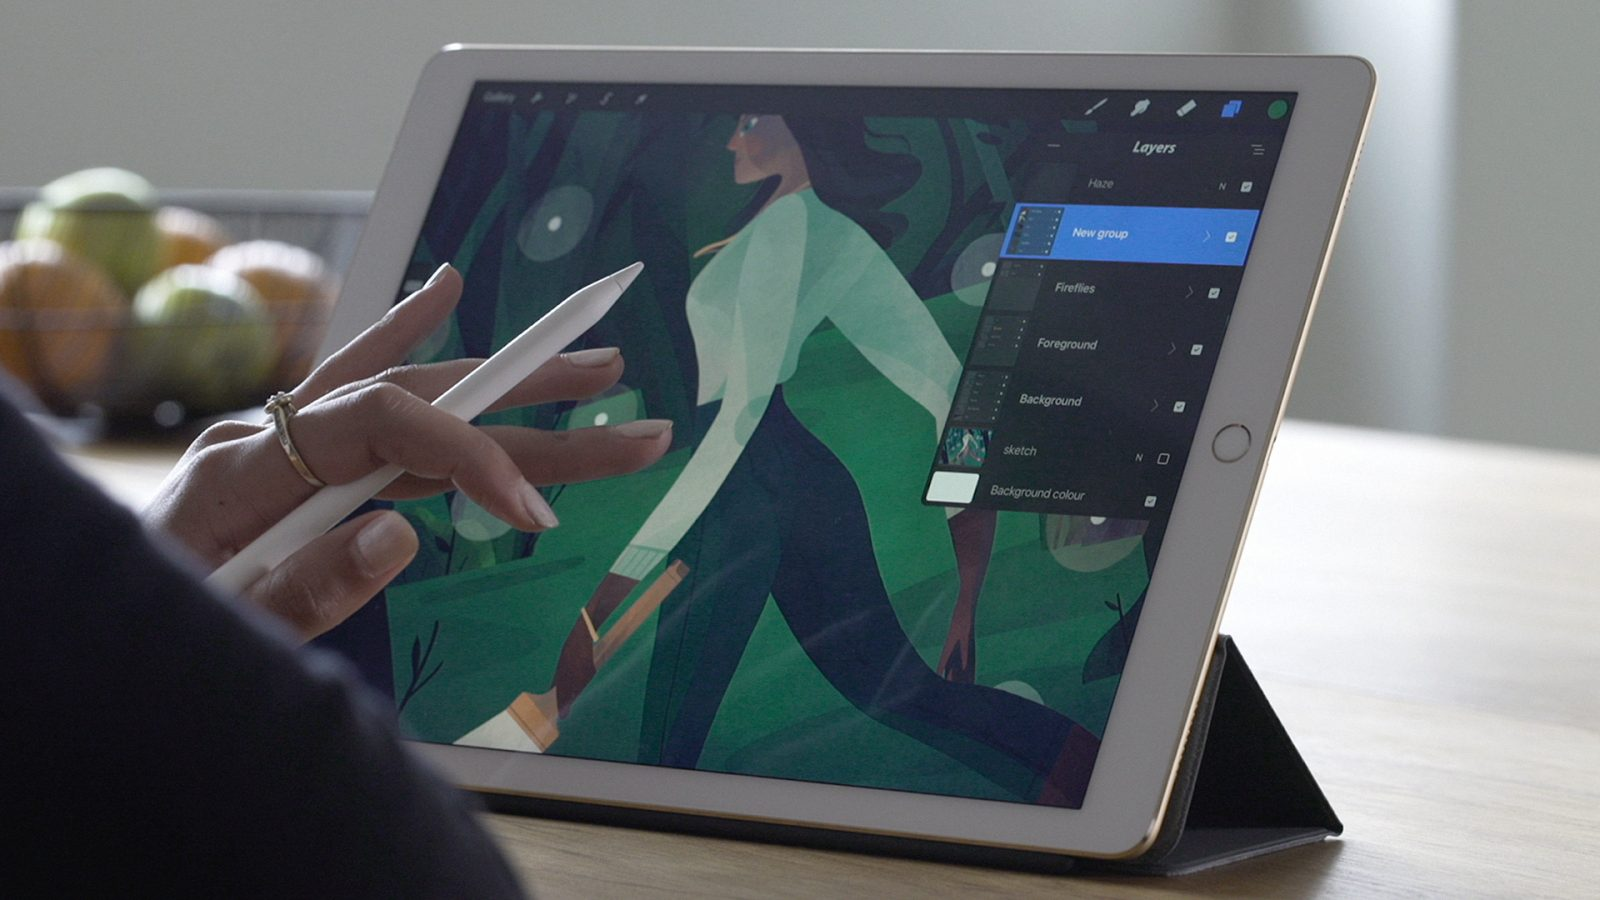 Massive Procreate for iPad update available with QuickShape